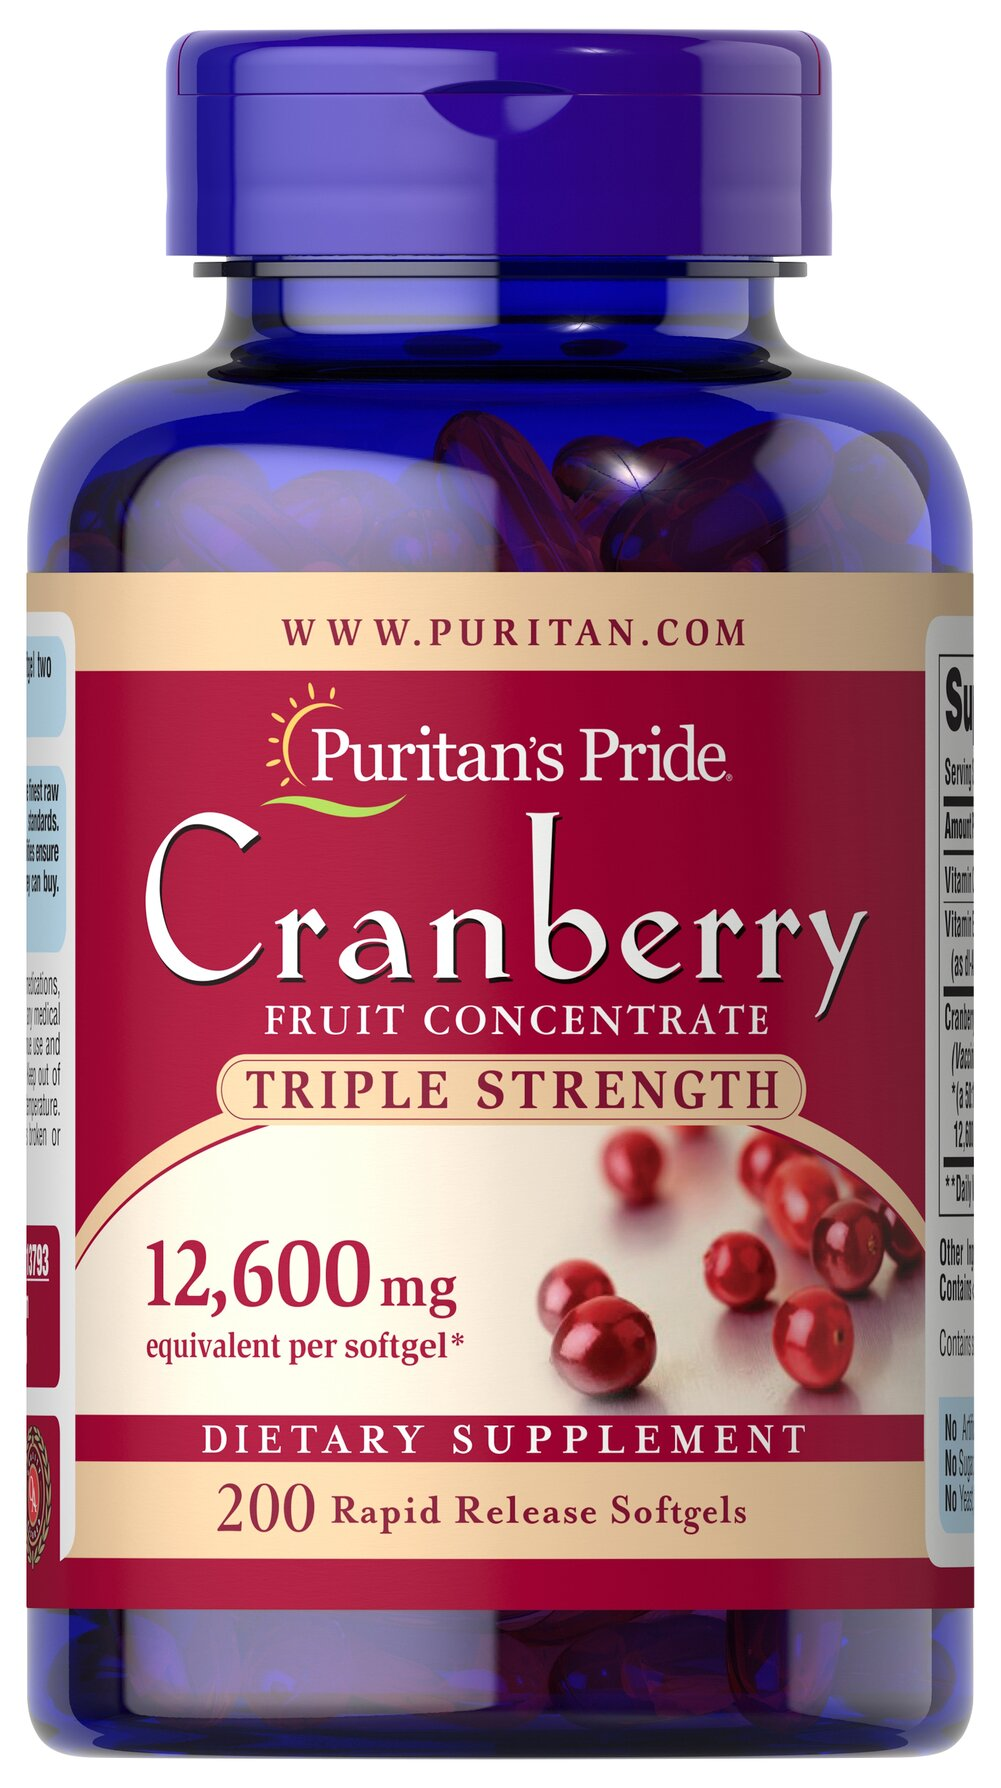 Triple Strength Cranberry Fruit Concentrate 12,600 mg  200 Softgels 12600 mg $39.99